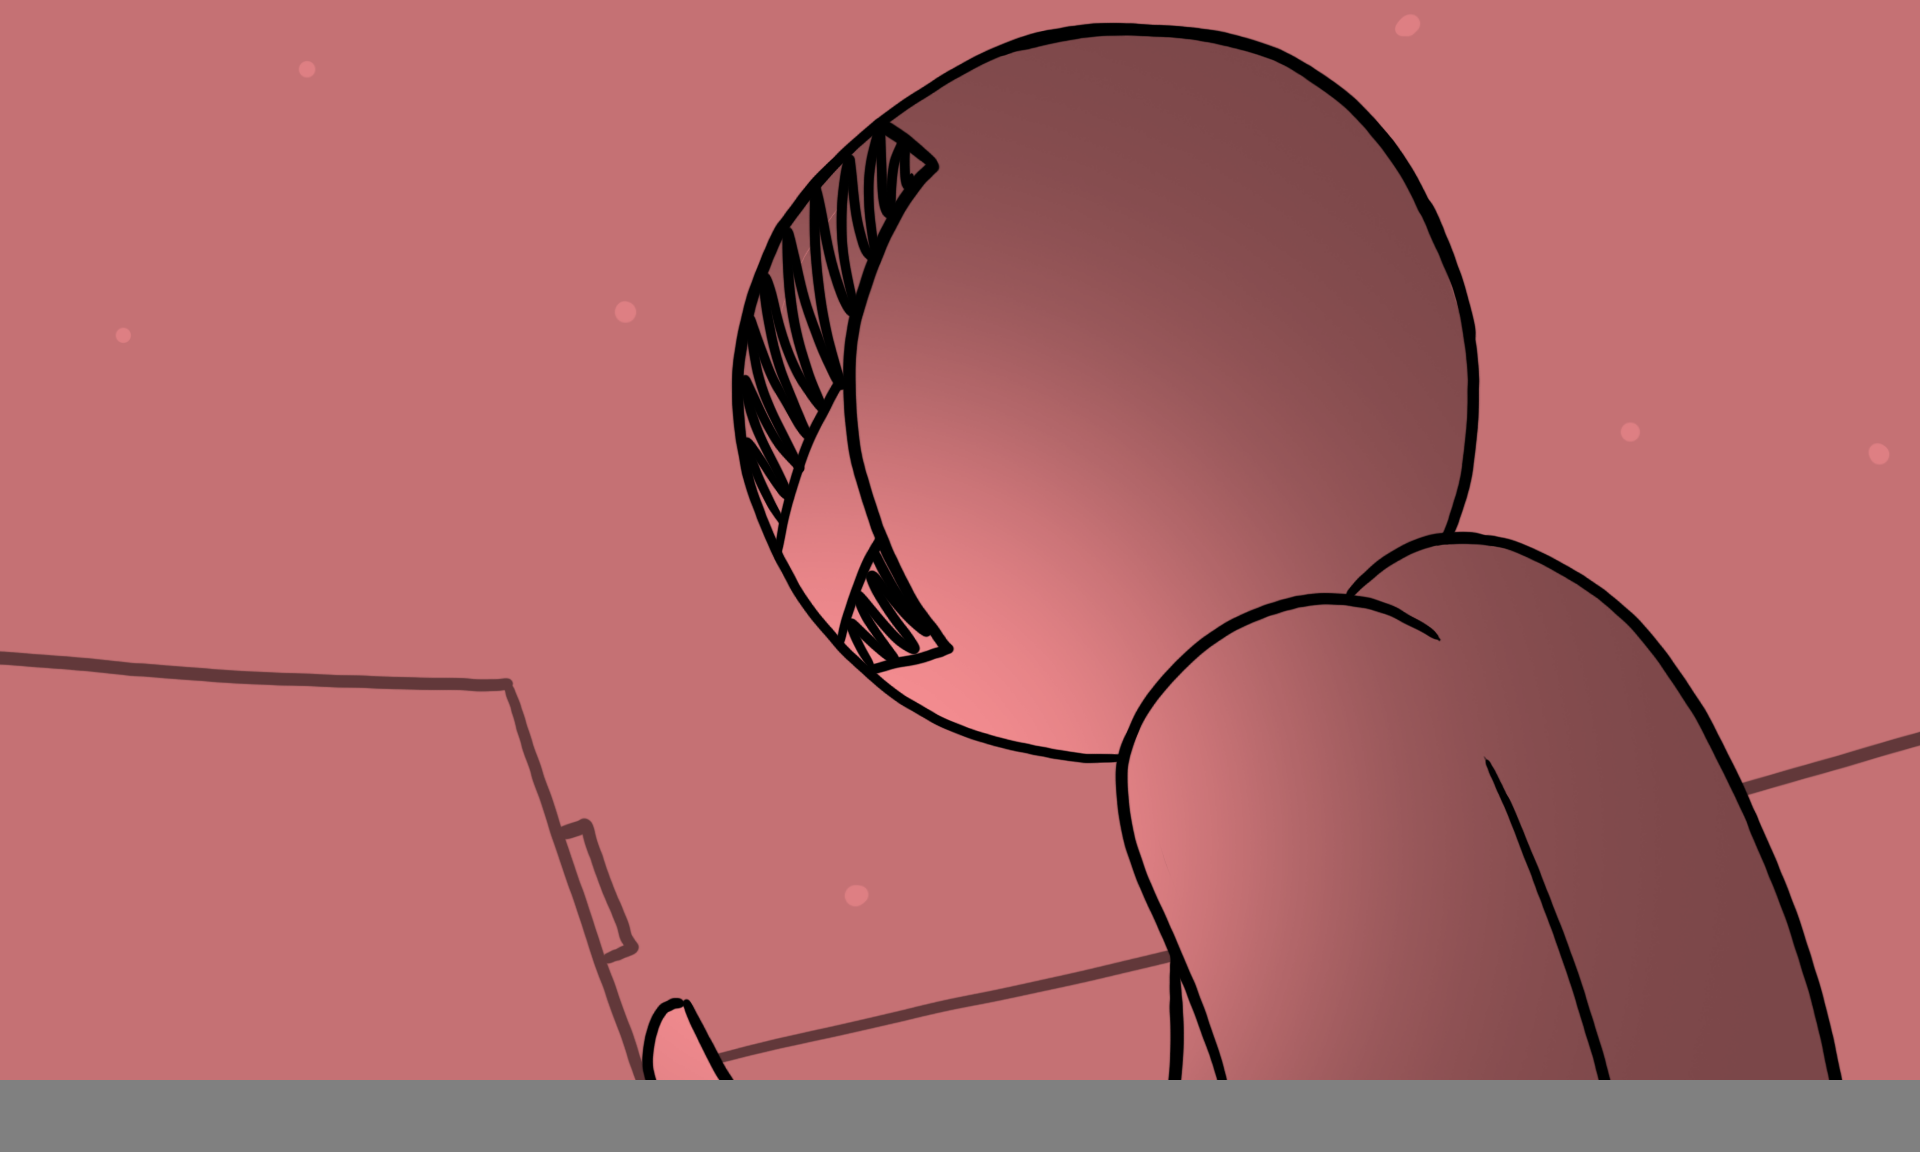 TheFlower2.16.png